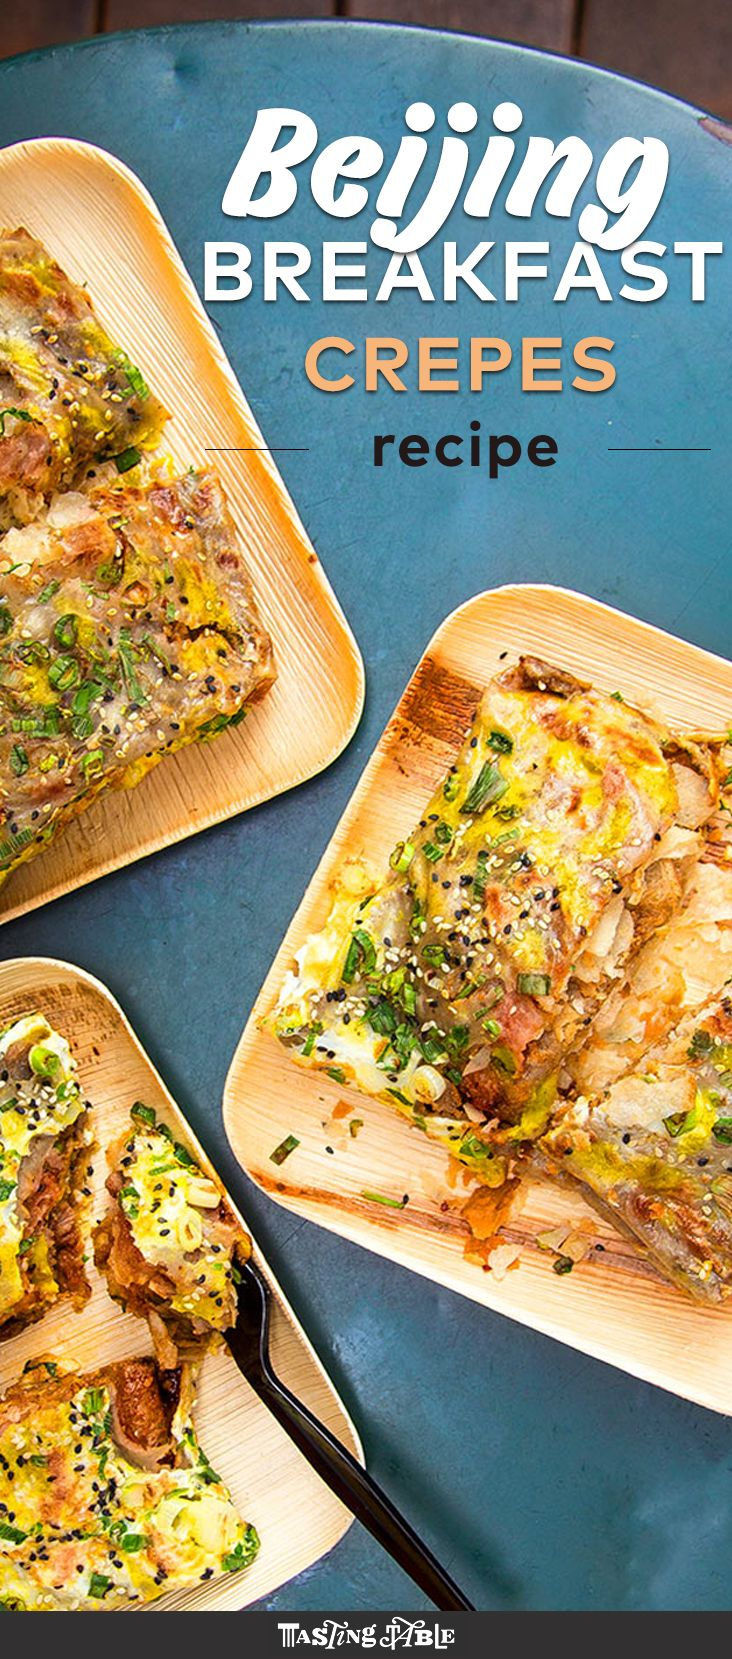 Say goodbye to breakfast burritos and hello to Chinese breakfast crepes filled with hoisin, egg and crispy wontons. Get the recipe on Tasting Table.